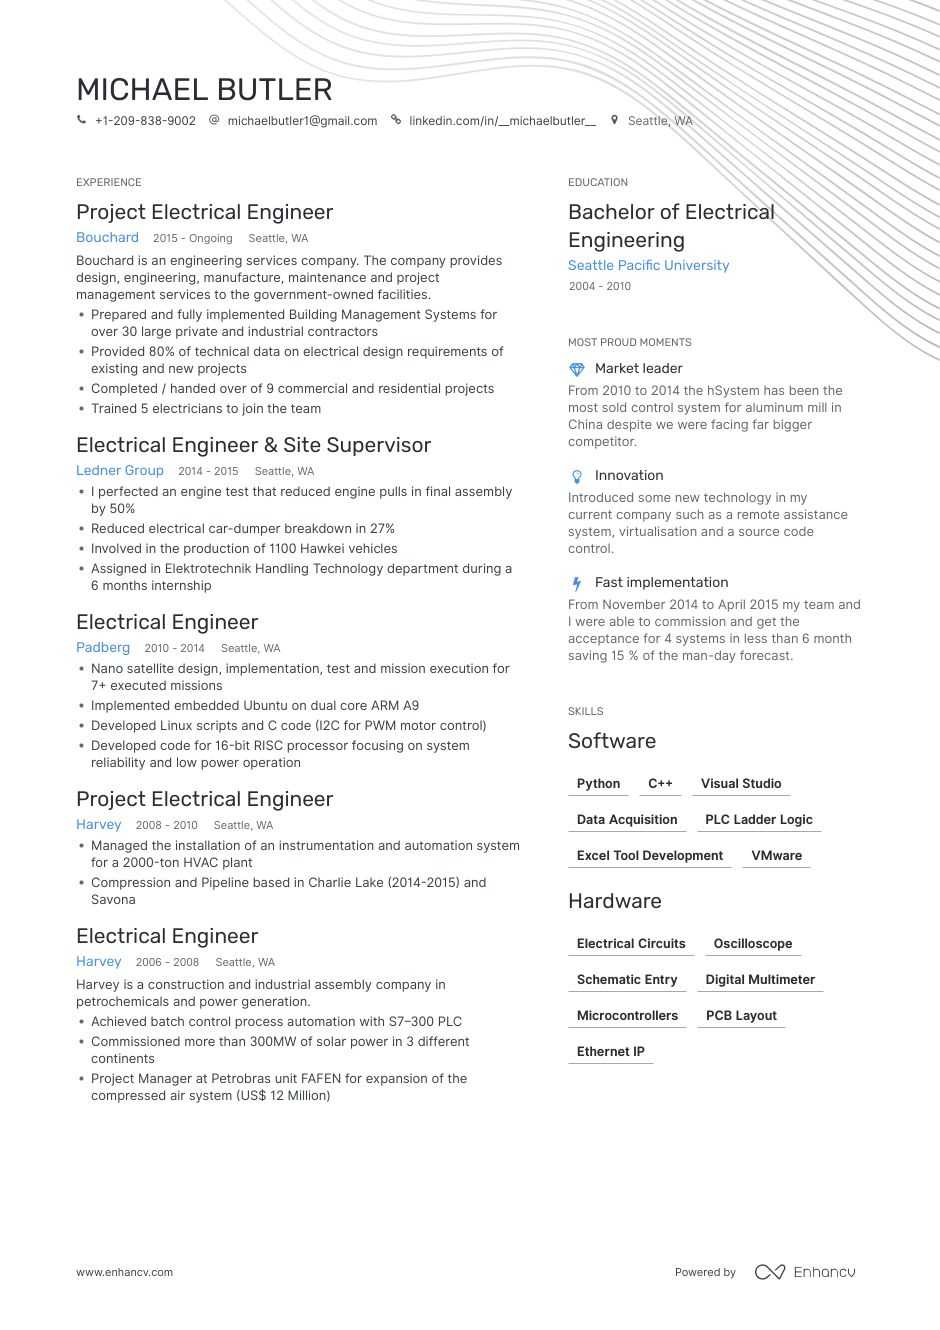 electrical engineer resume examples pro tips featured enhancv wiring harness design Resume Wiring Harness Design Engineer Resume